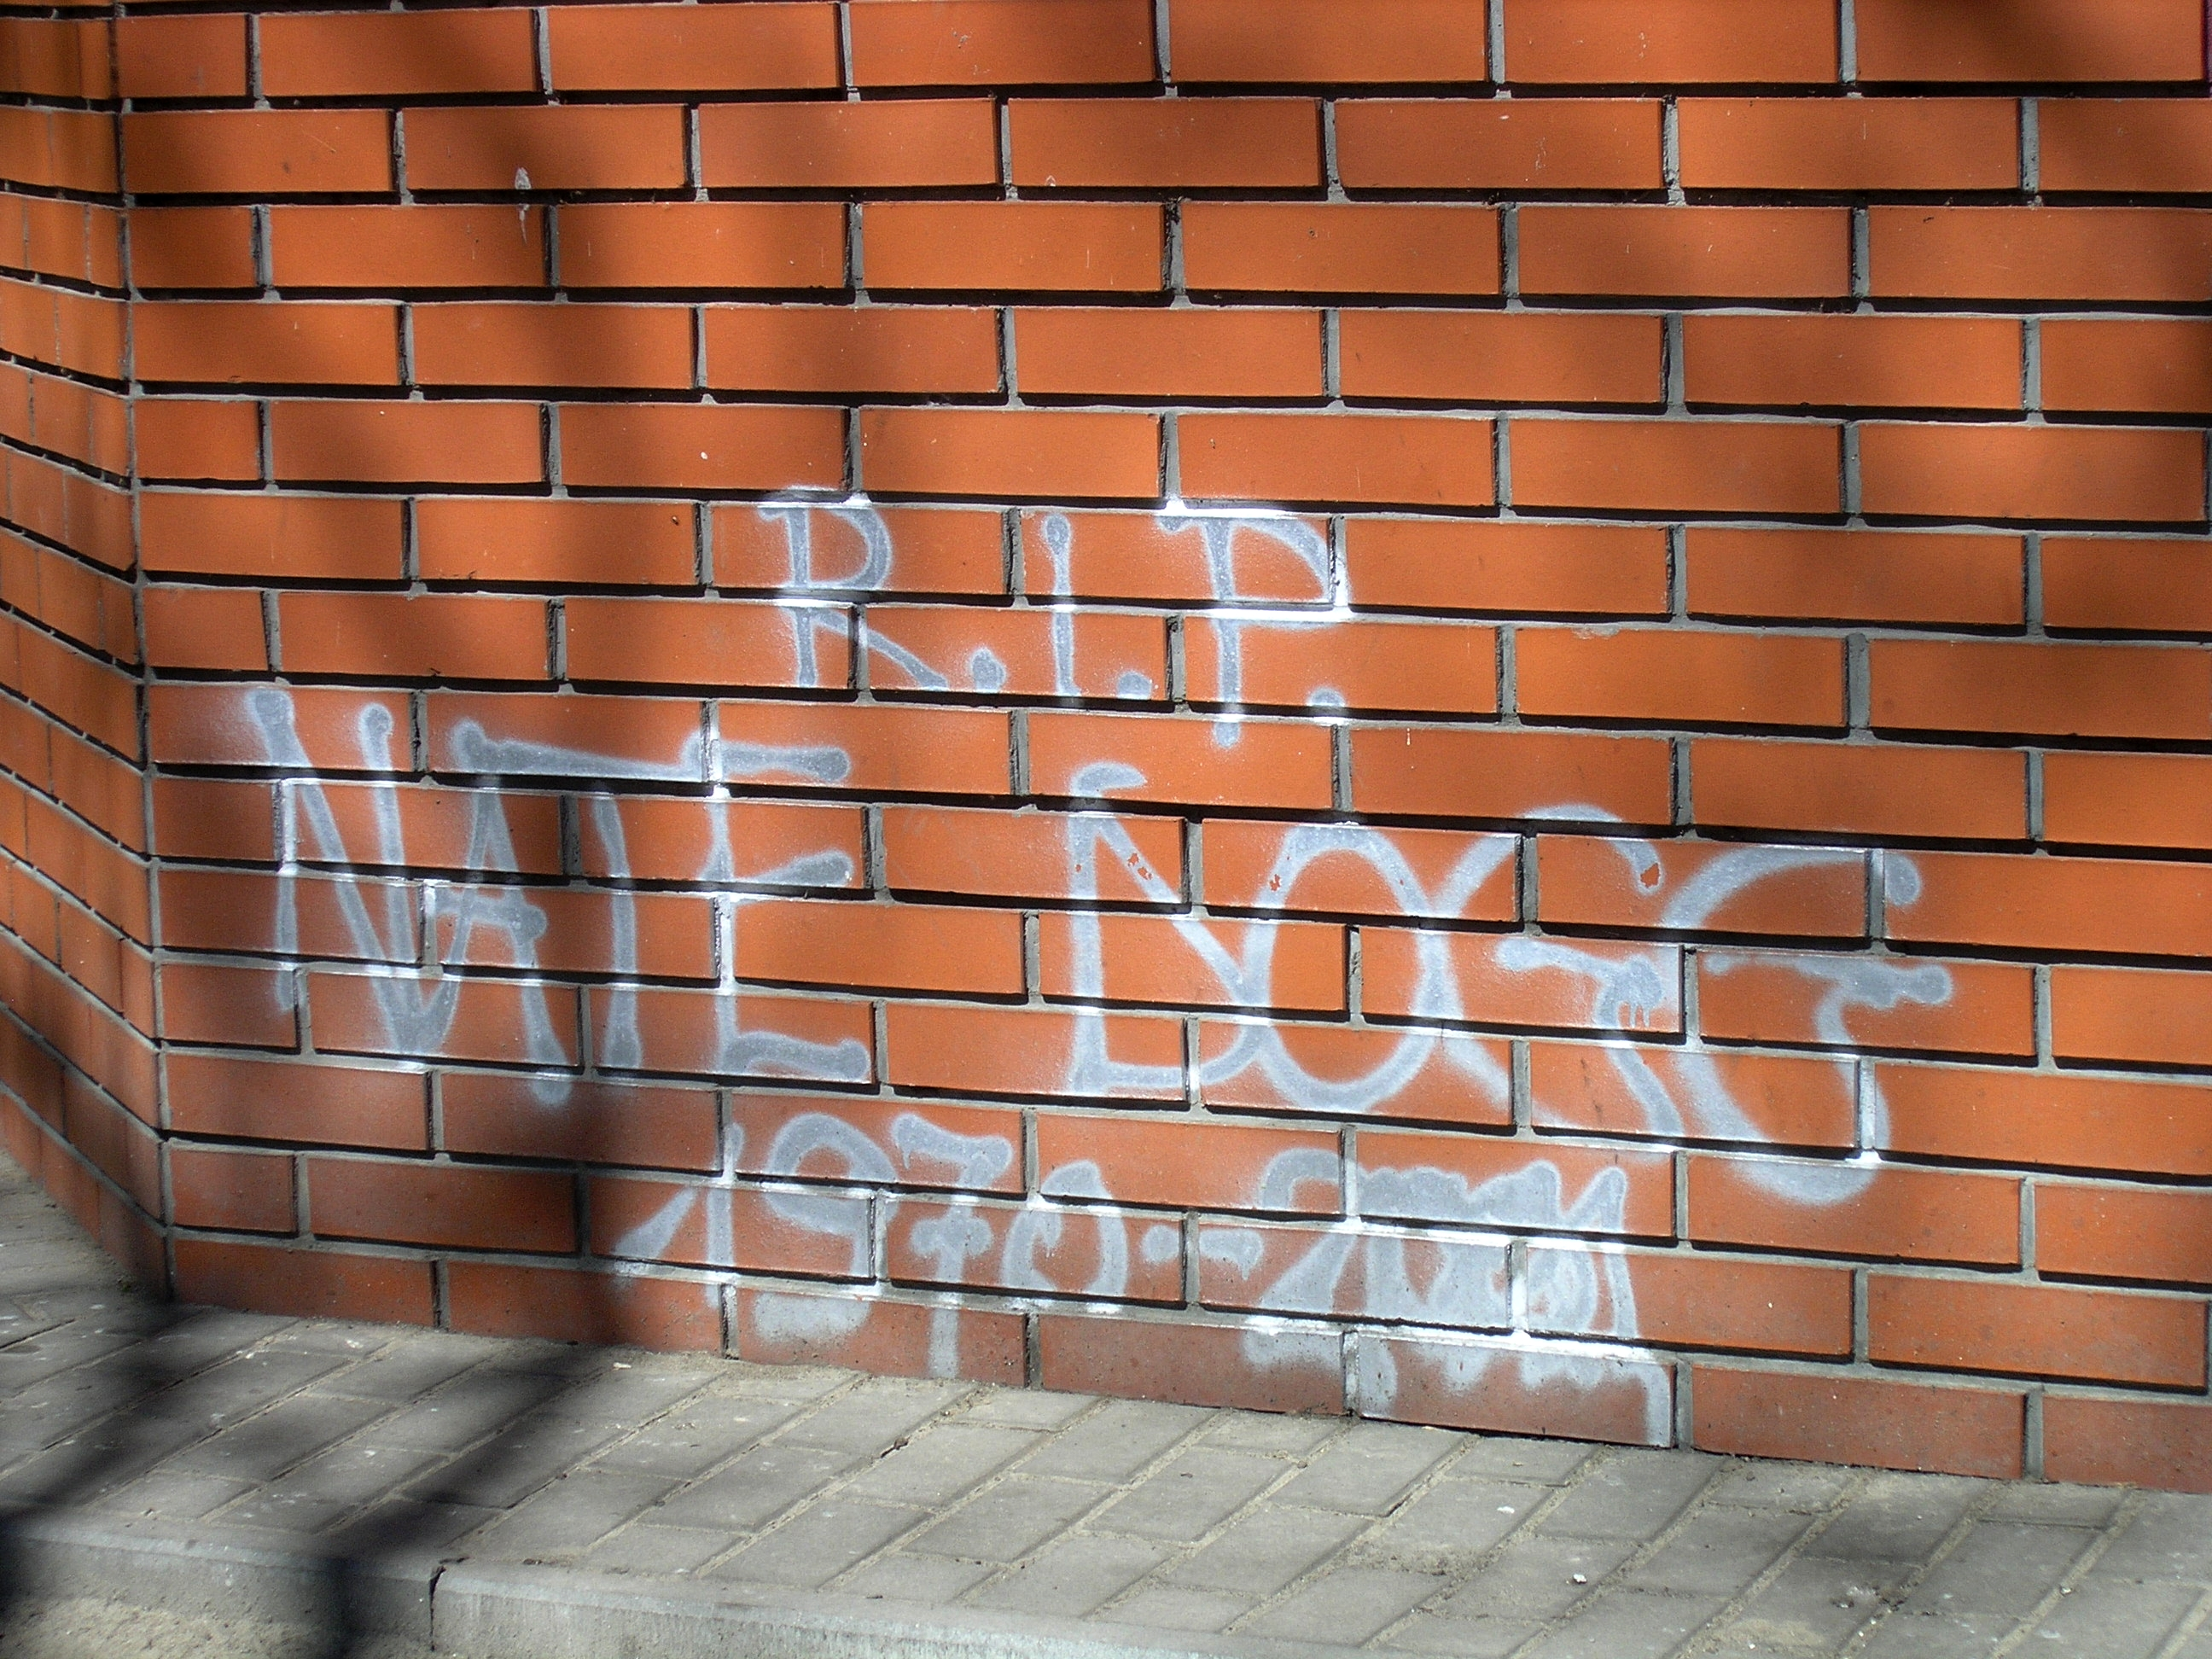 Graffiti devoted to Nate Dogg on Solidarności Avenue in Warsaw (April 2012)